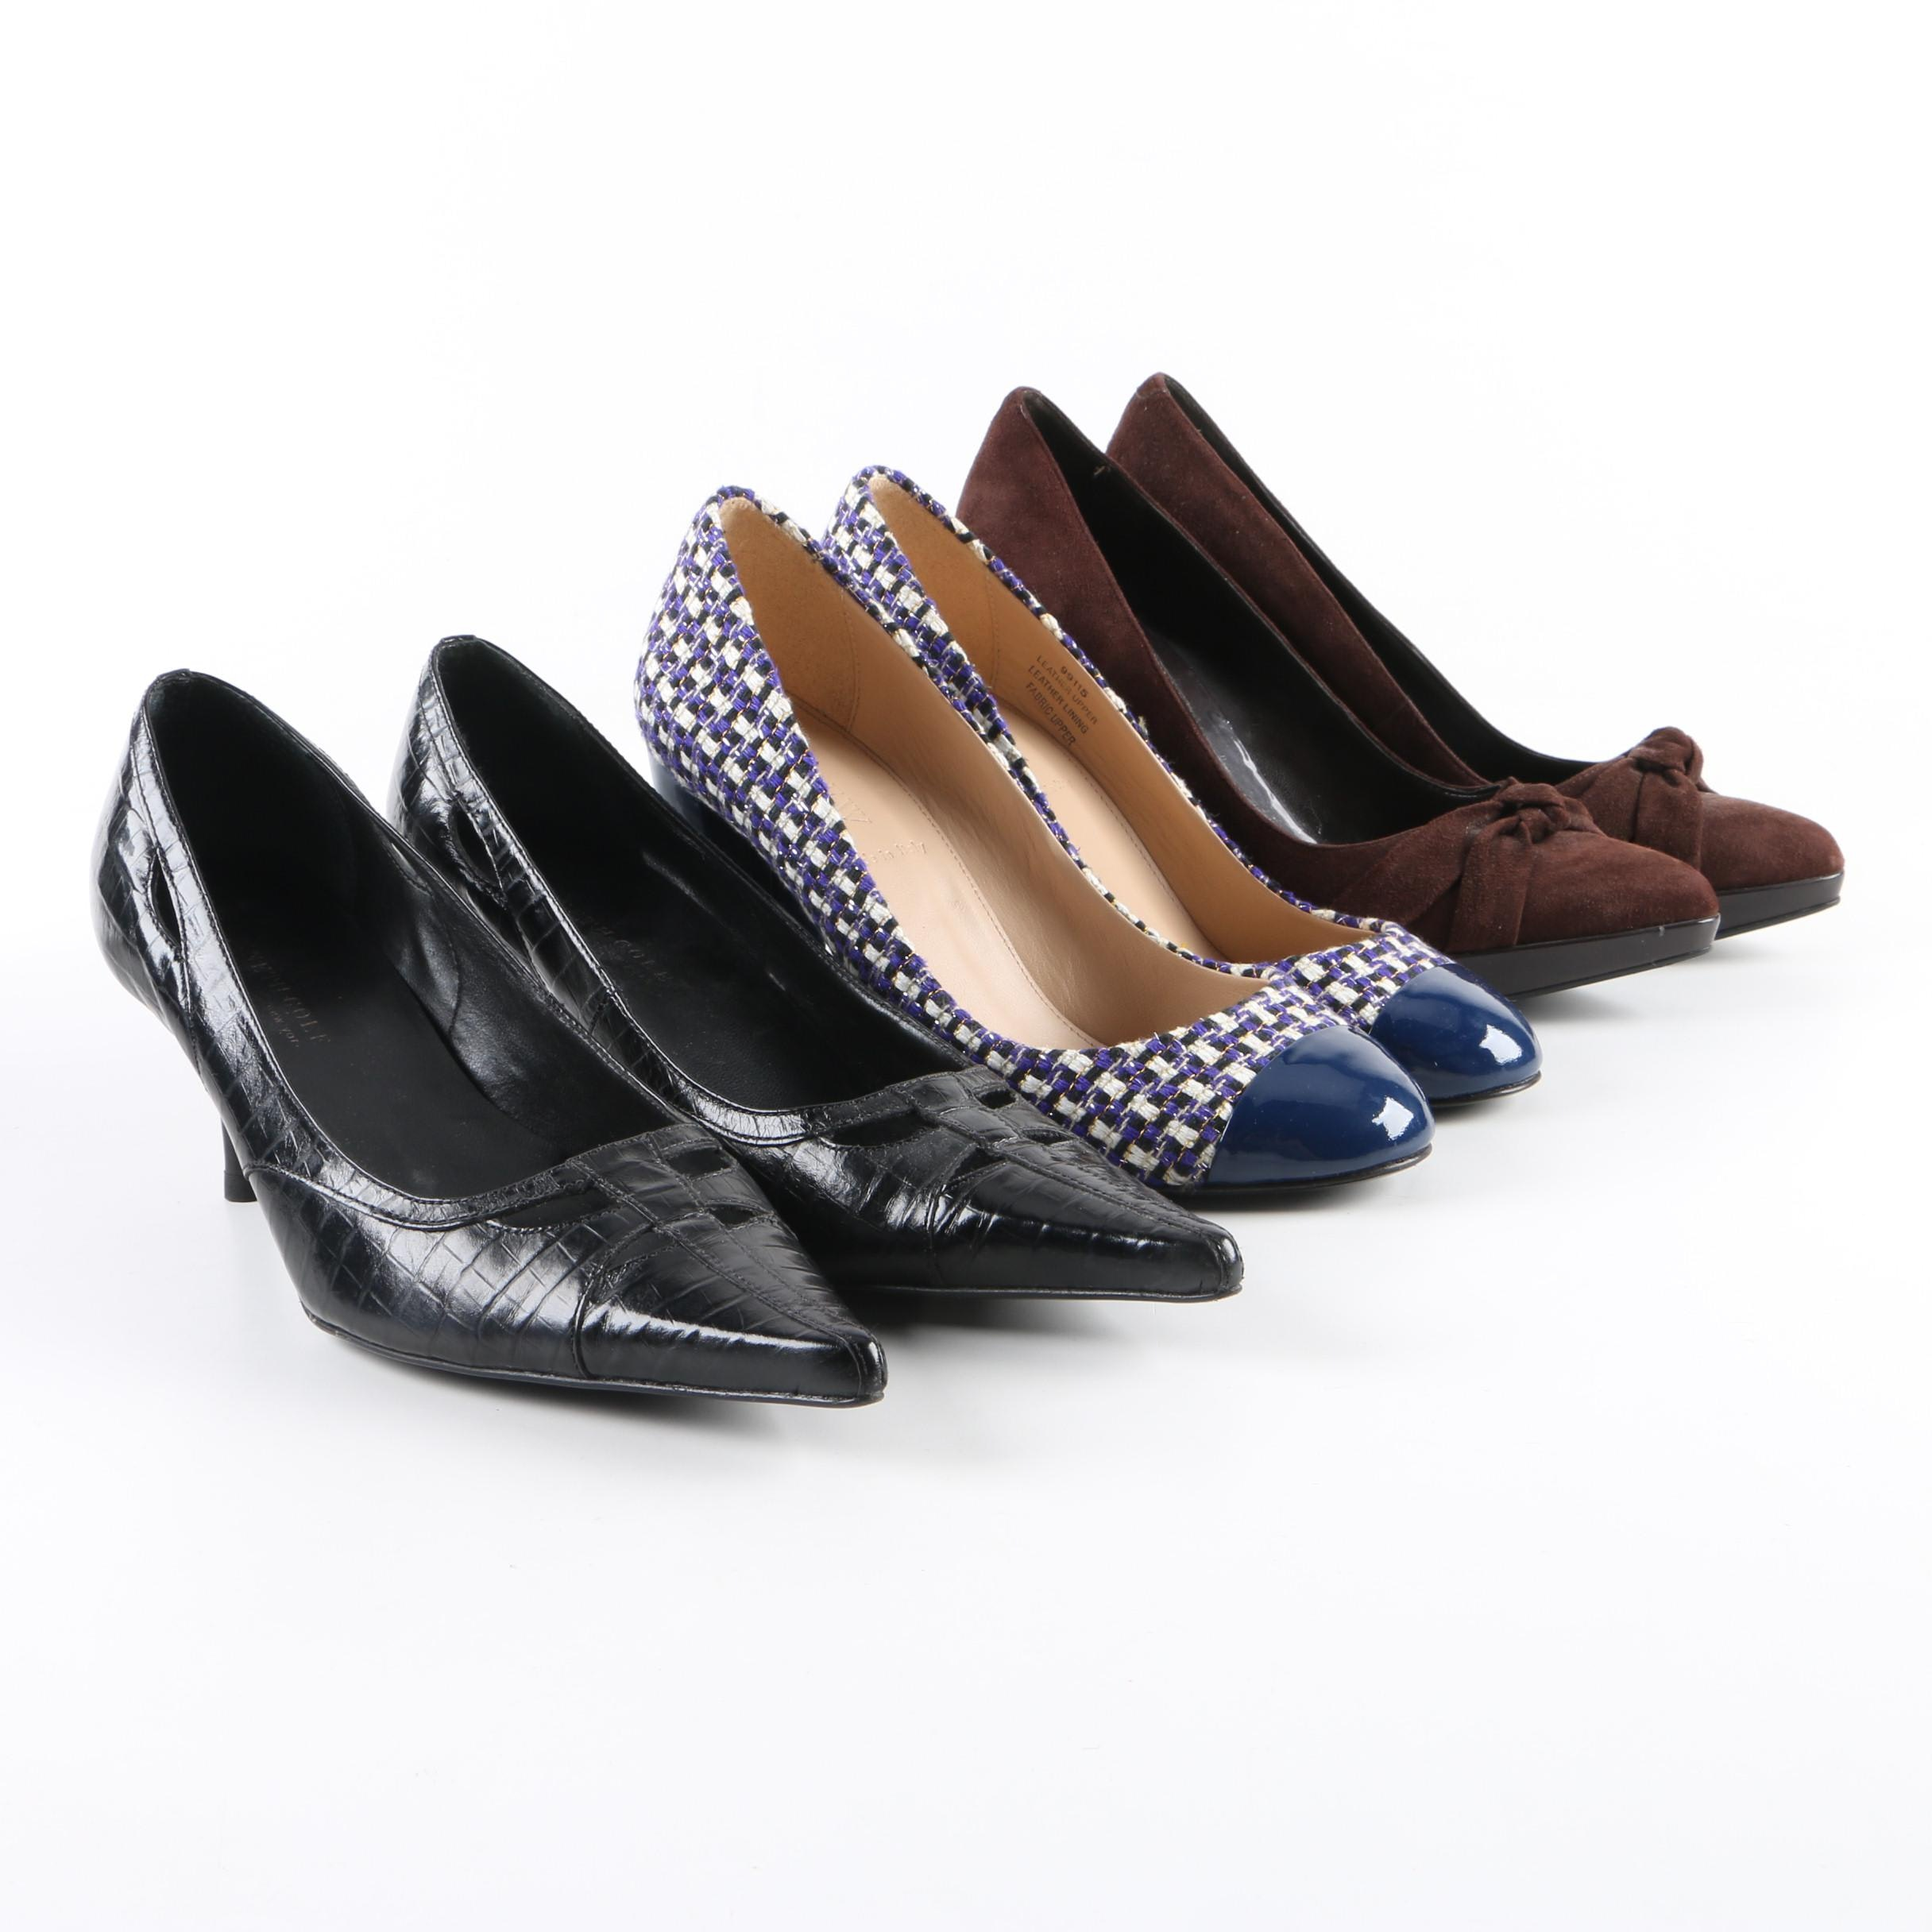 Women's High-Heeled Shoes Including Kenneth Cole and J.Crew